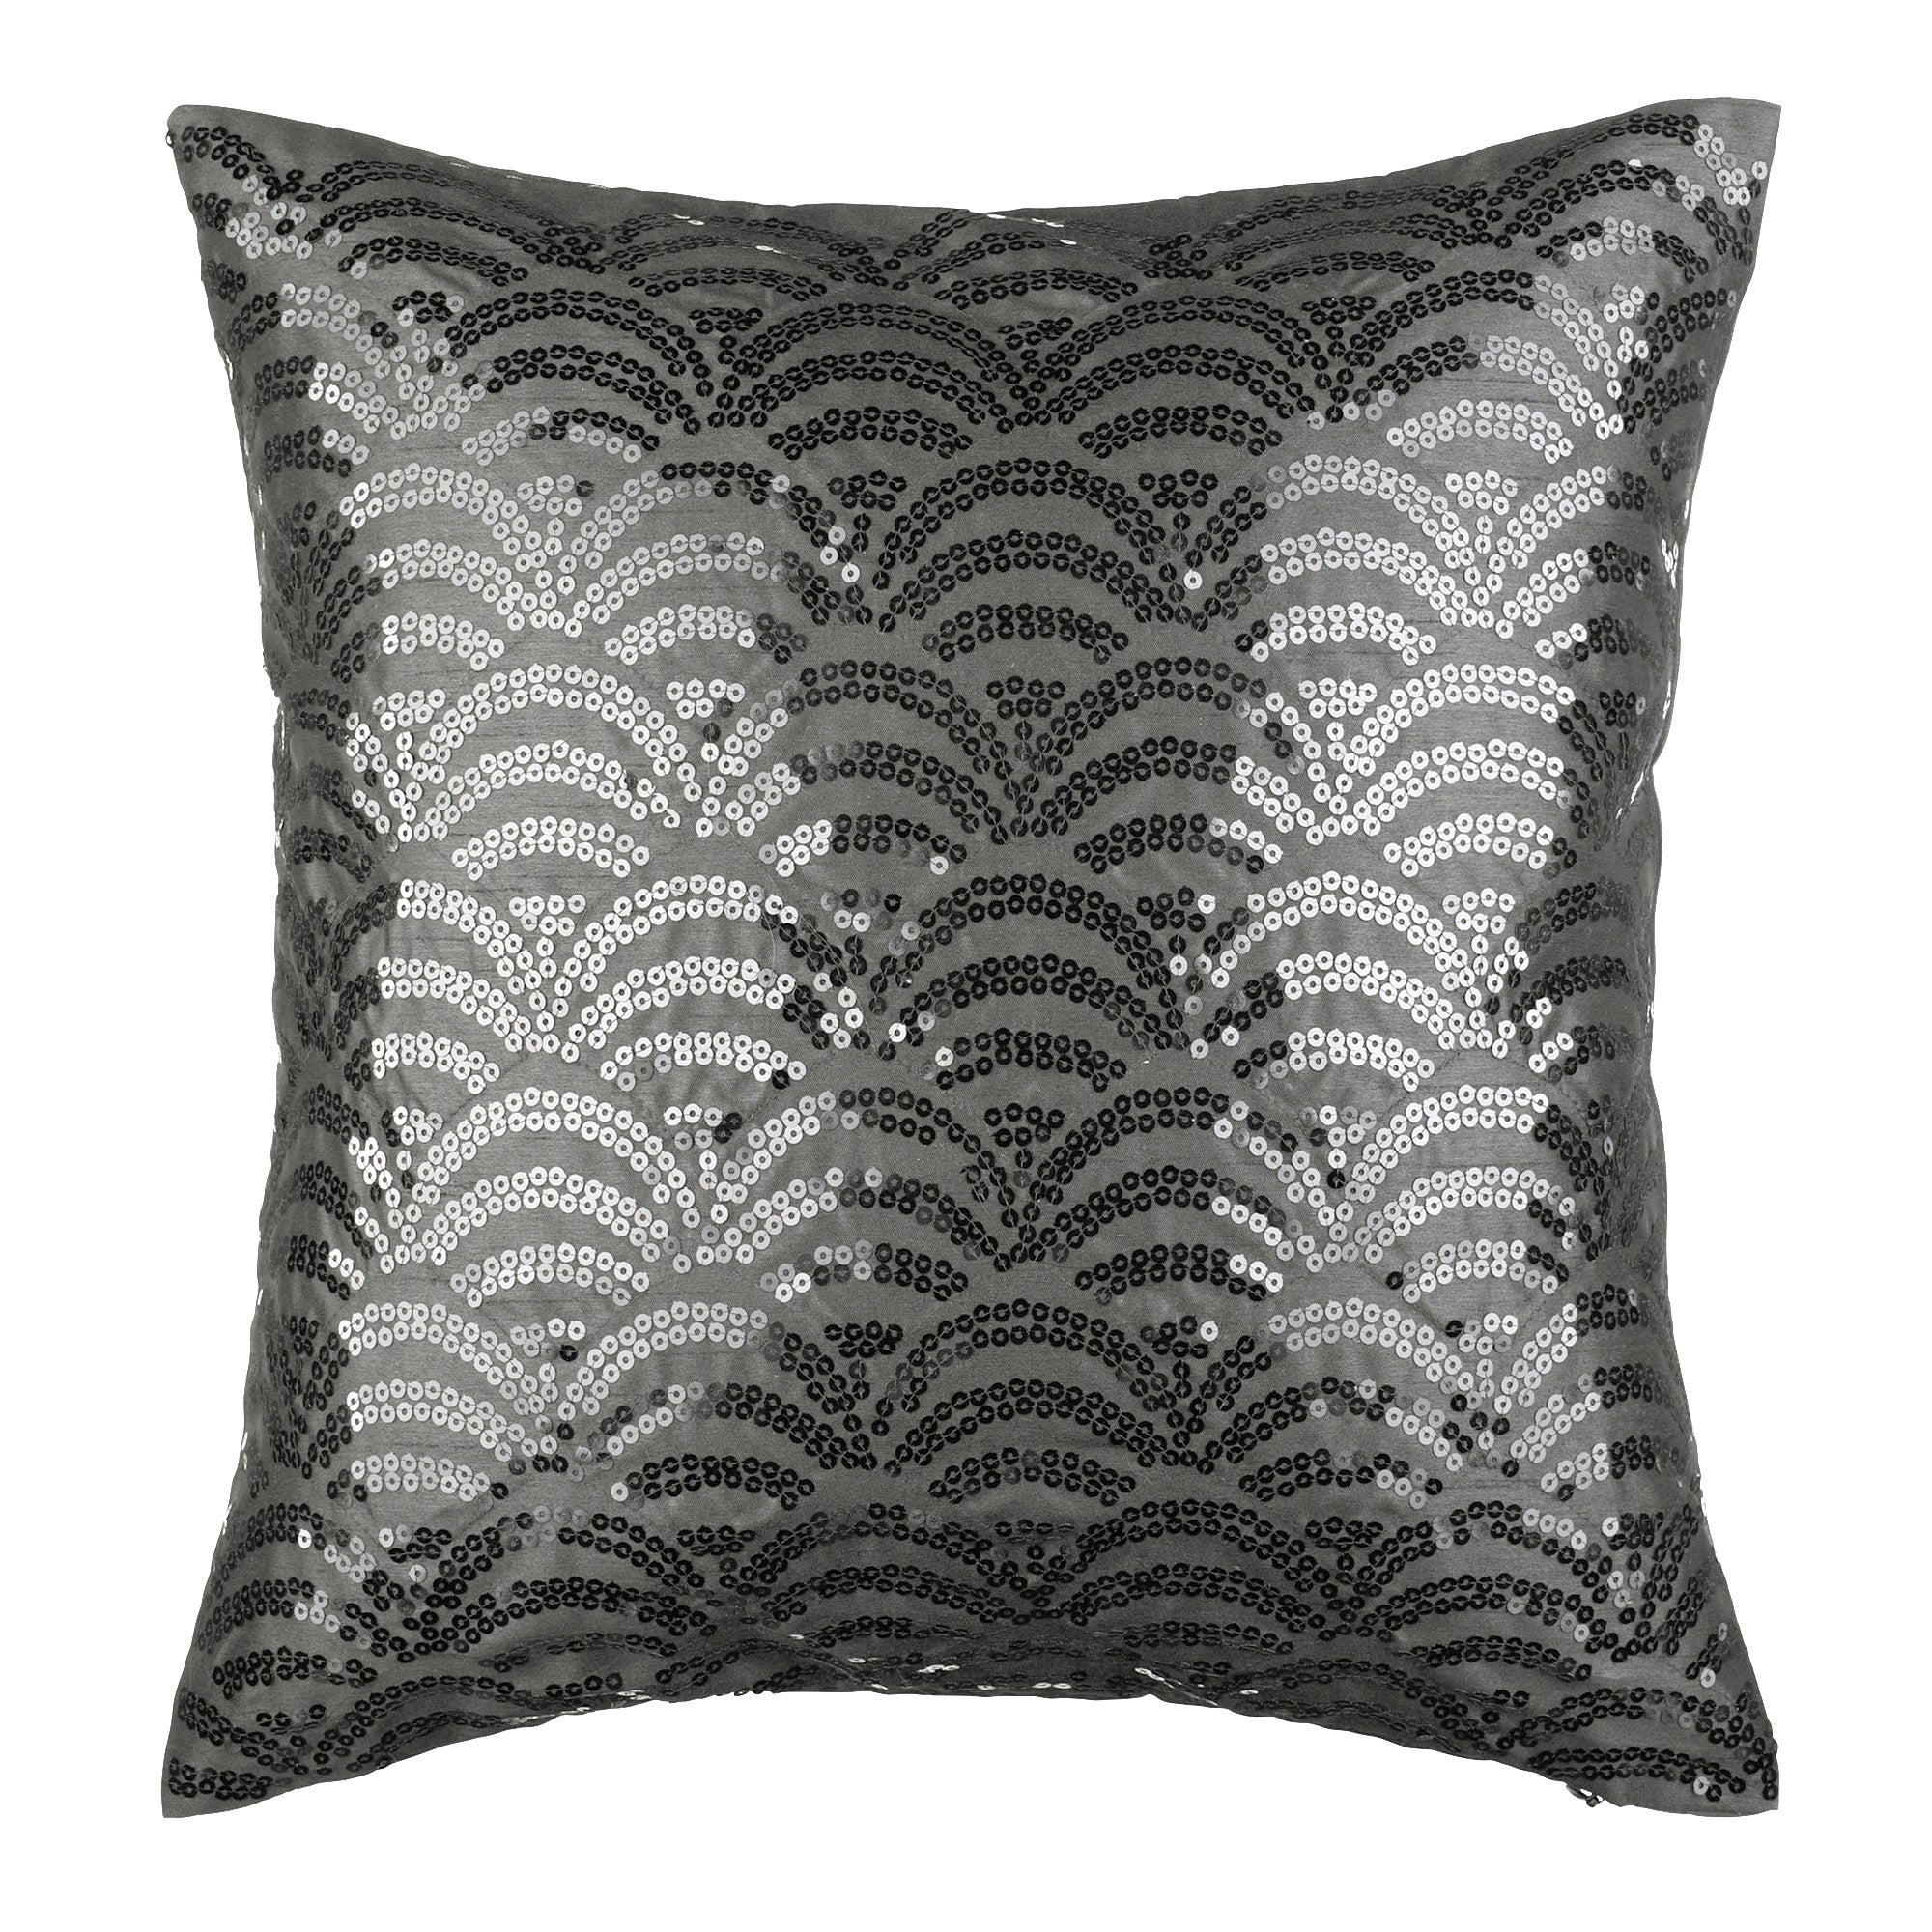 Black Sequin Scallop Cushion